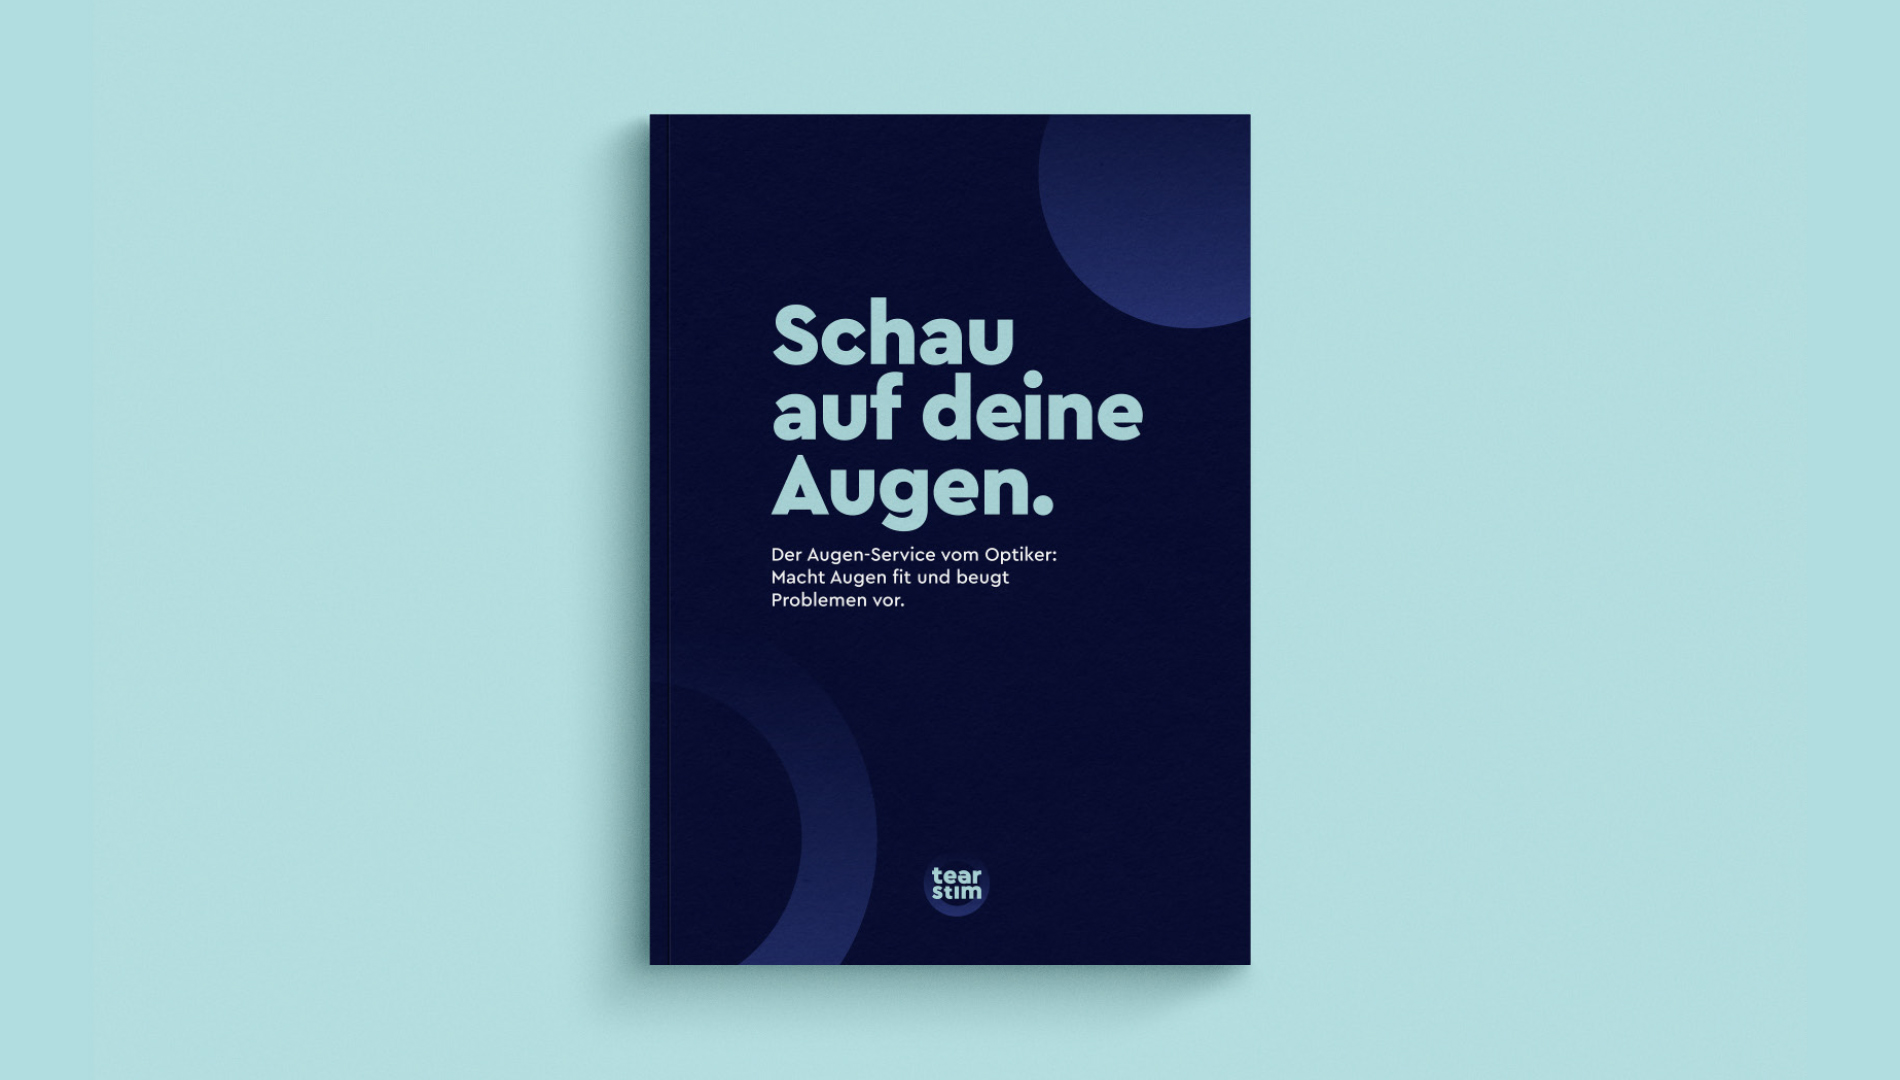 tearstim-djw-bild-quer-folder-cover